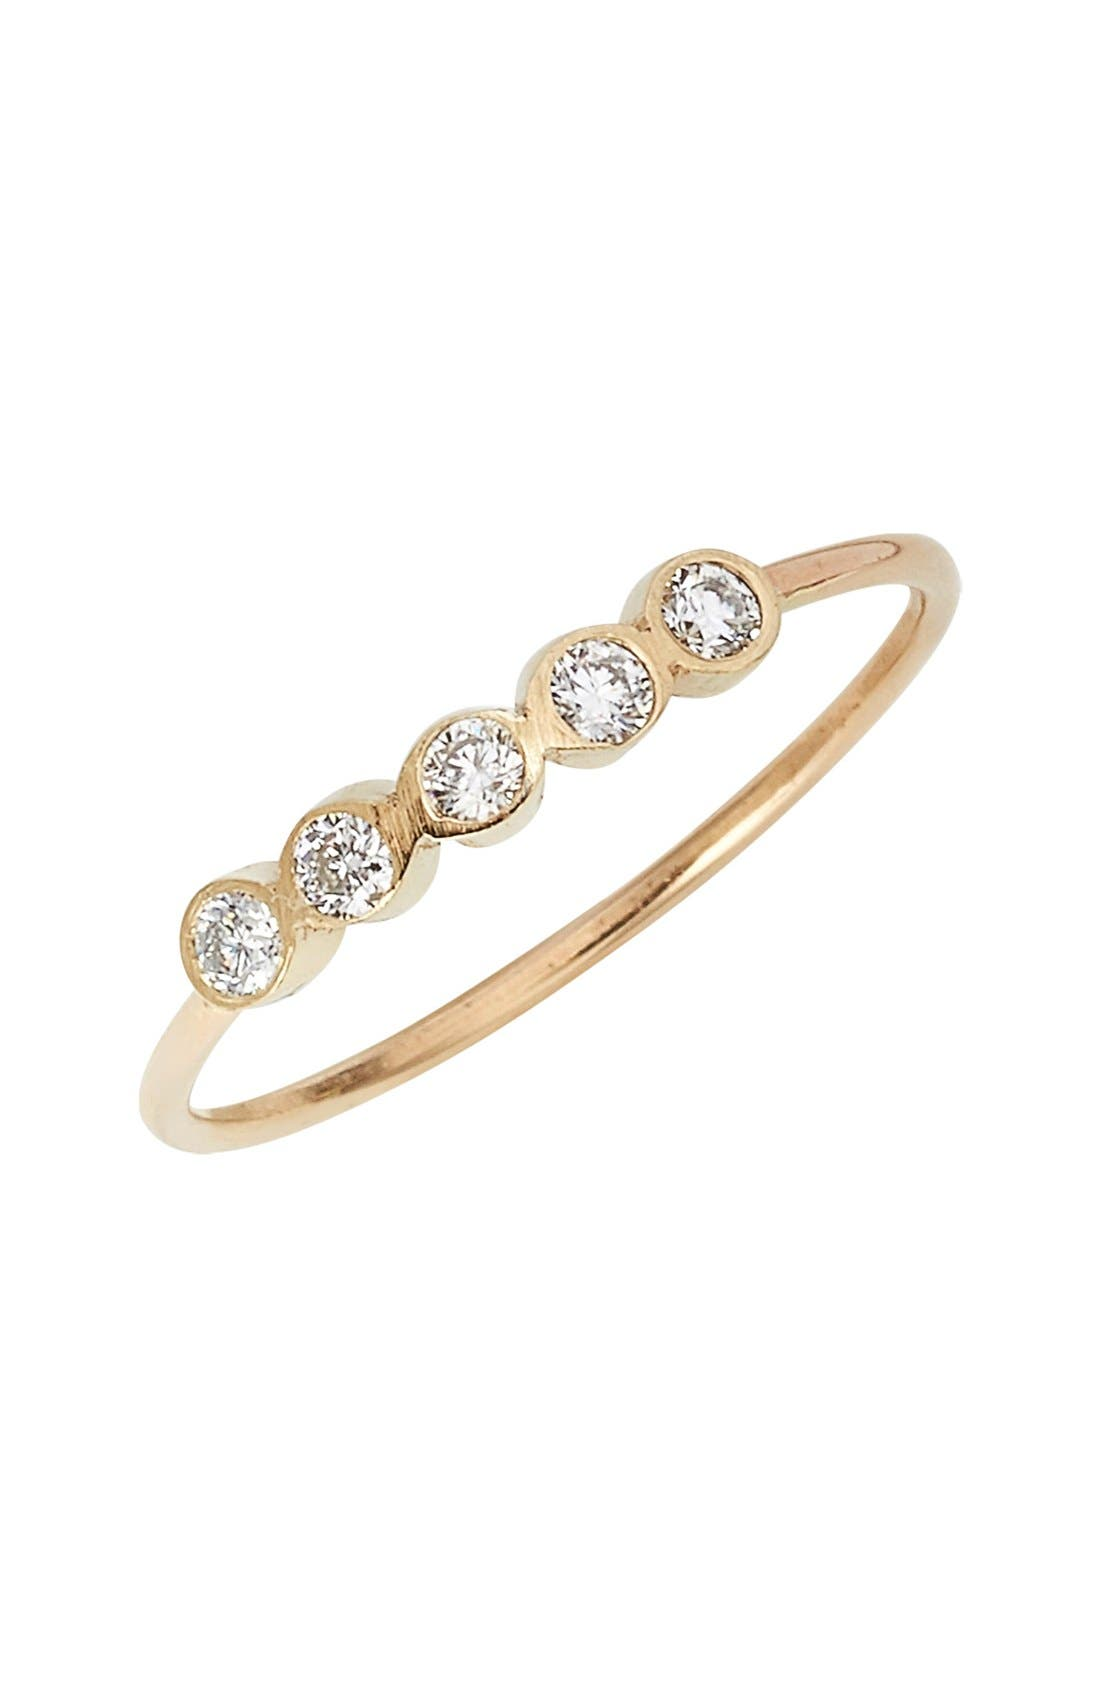 ZOË CHICCO,                             Diamond Bezel Ring,                             Main thumbnail 1, color,                             710